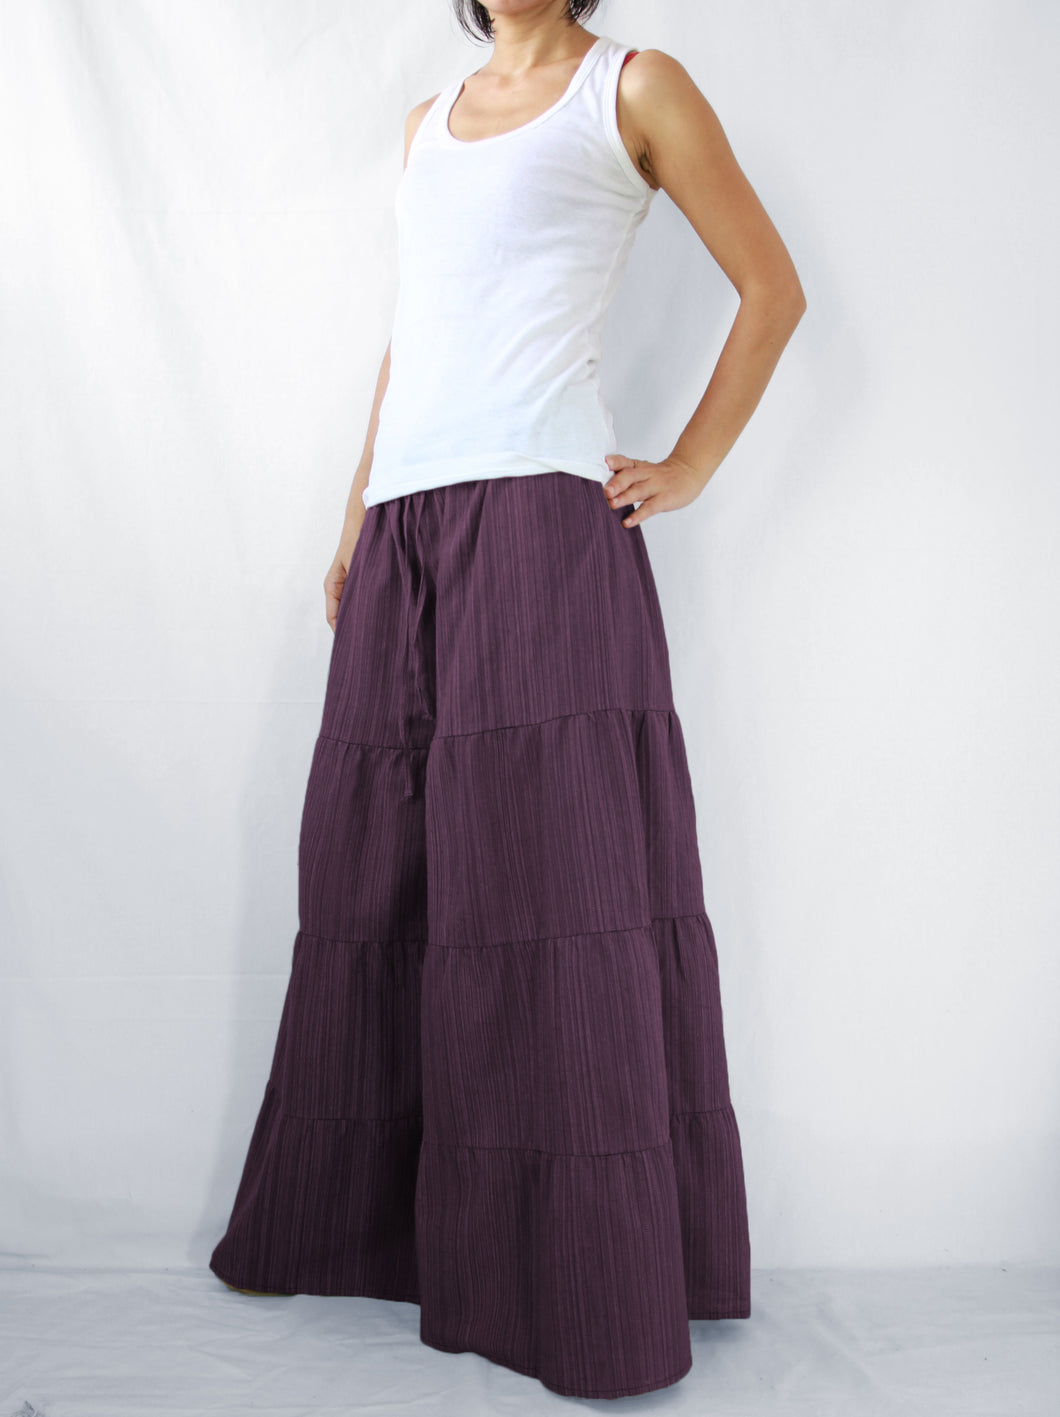 Burgundy Wide Leg Pants Casual Flare Trousers